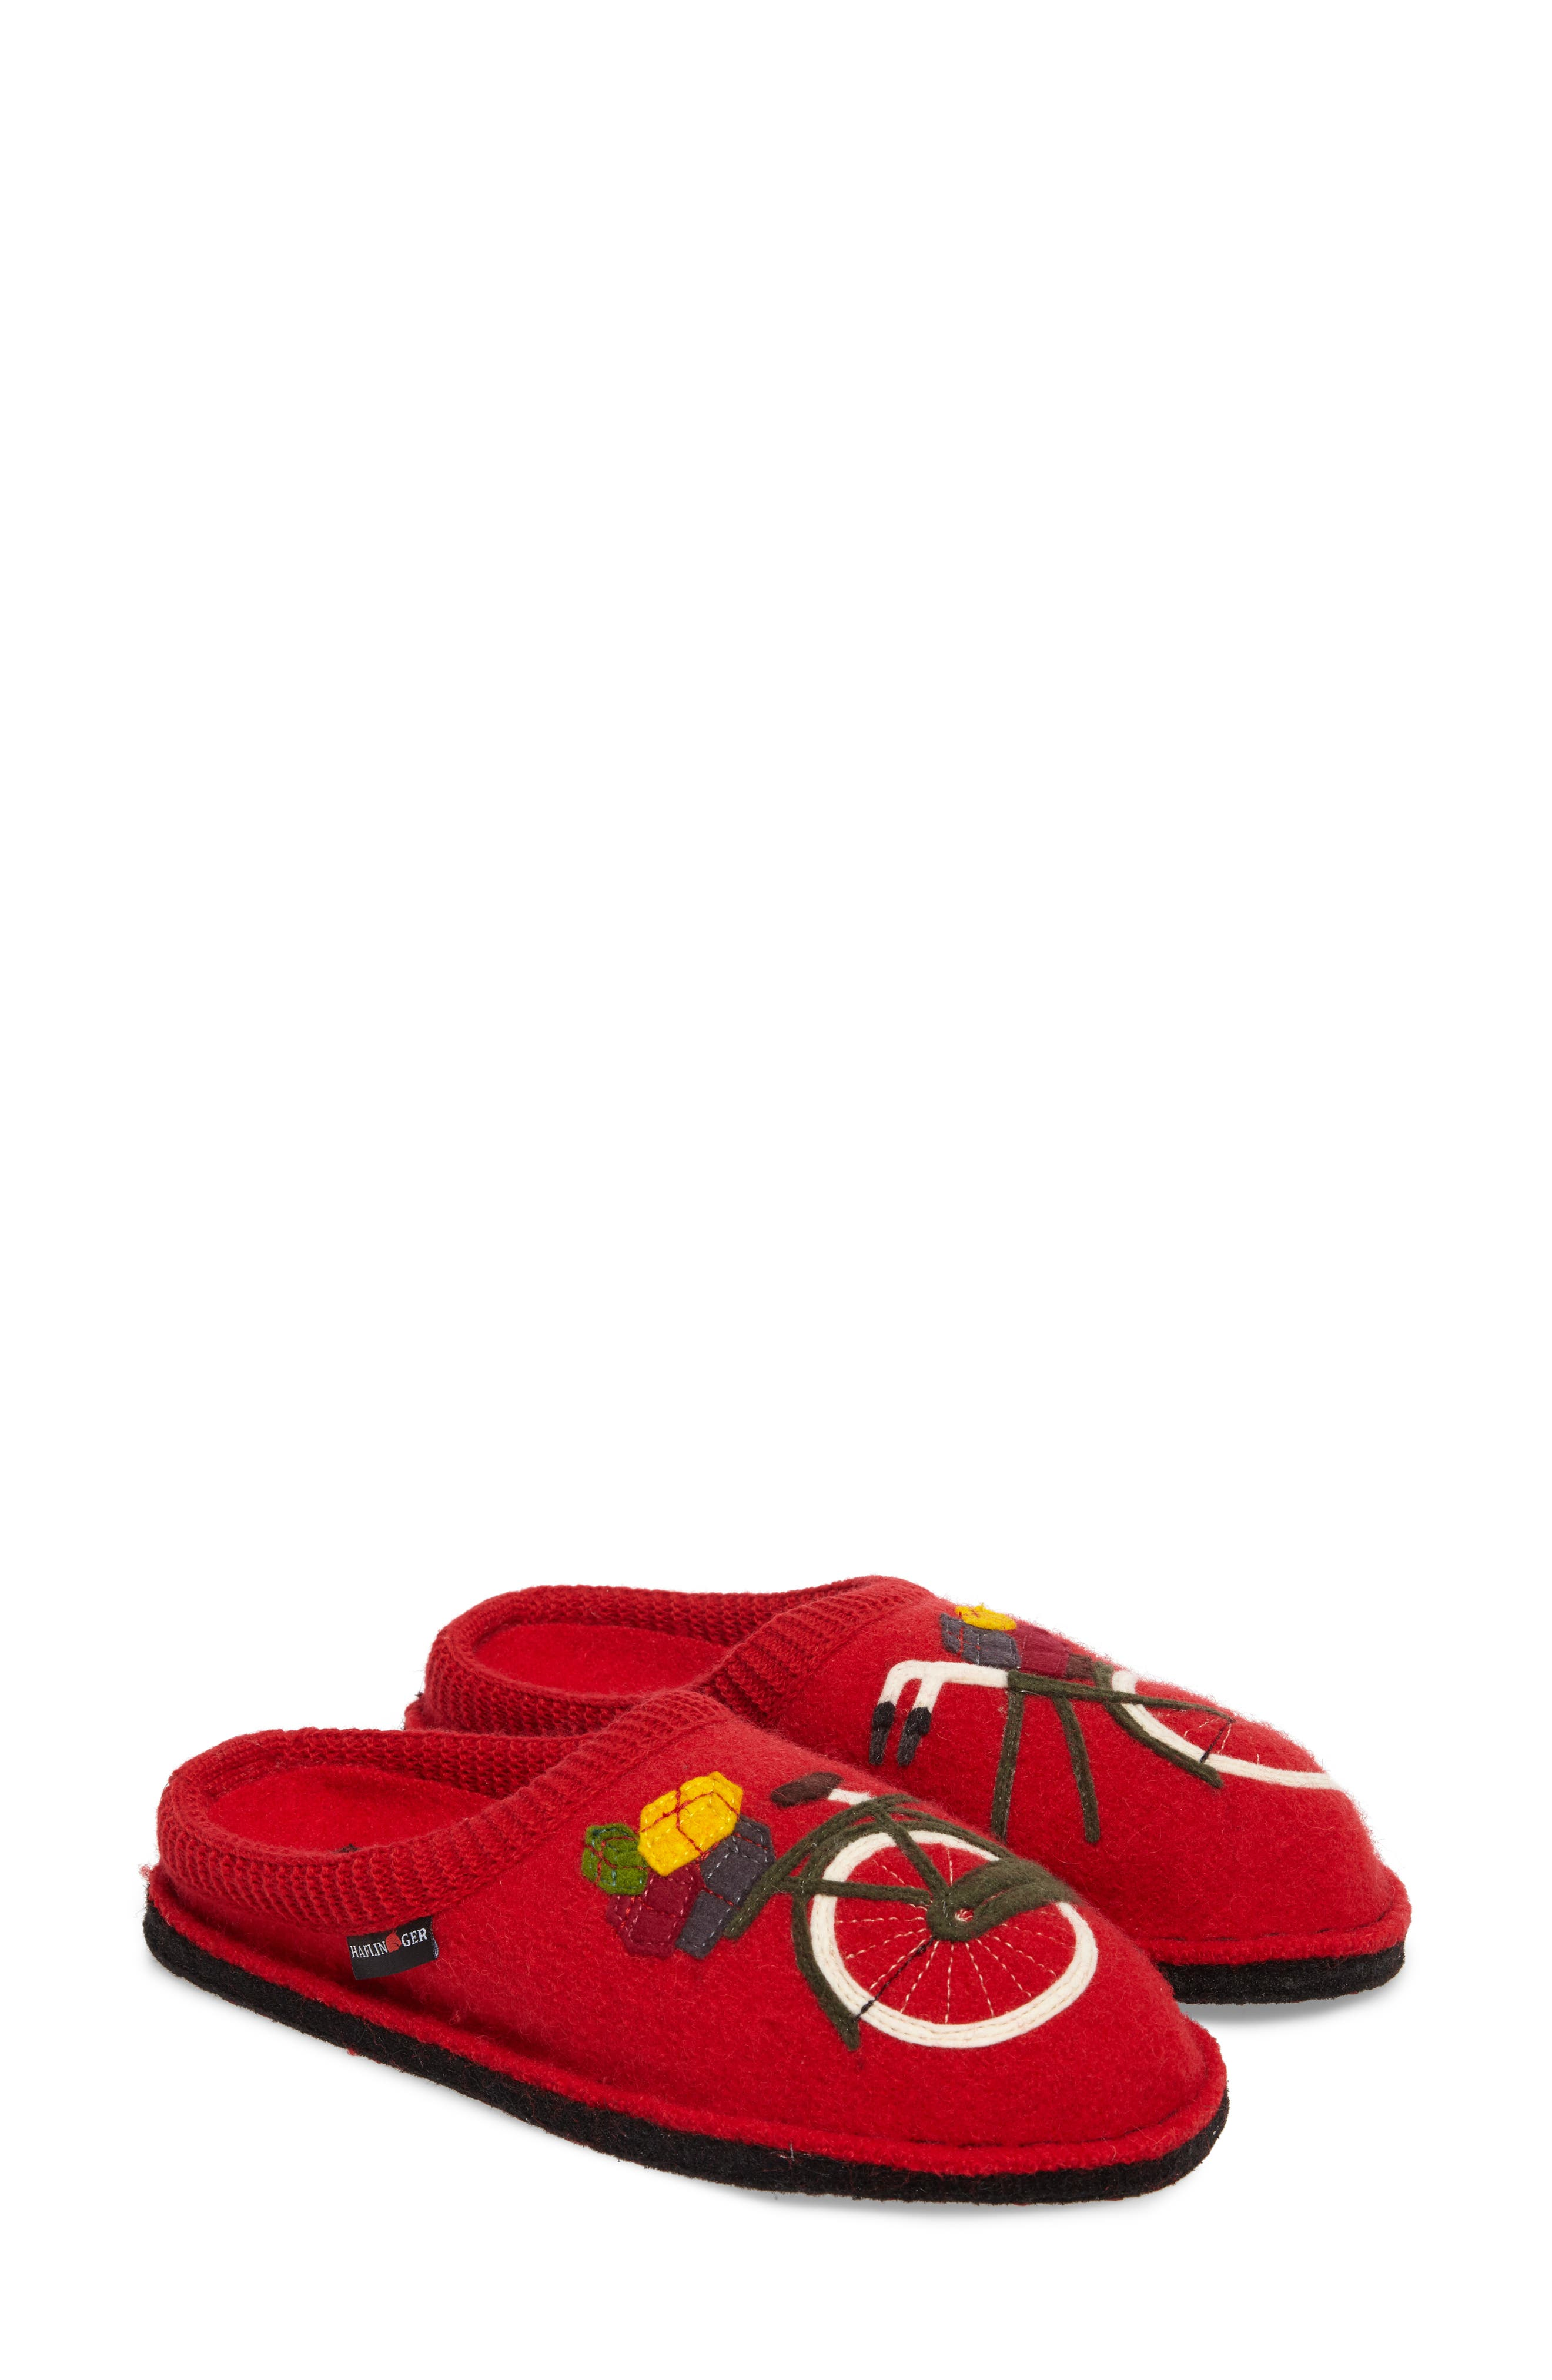 Bicycle Slipper,                             Alternate thumbnail 2, color,                             600